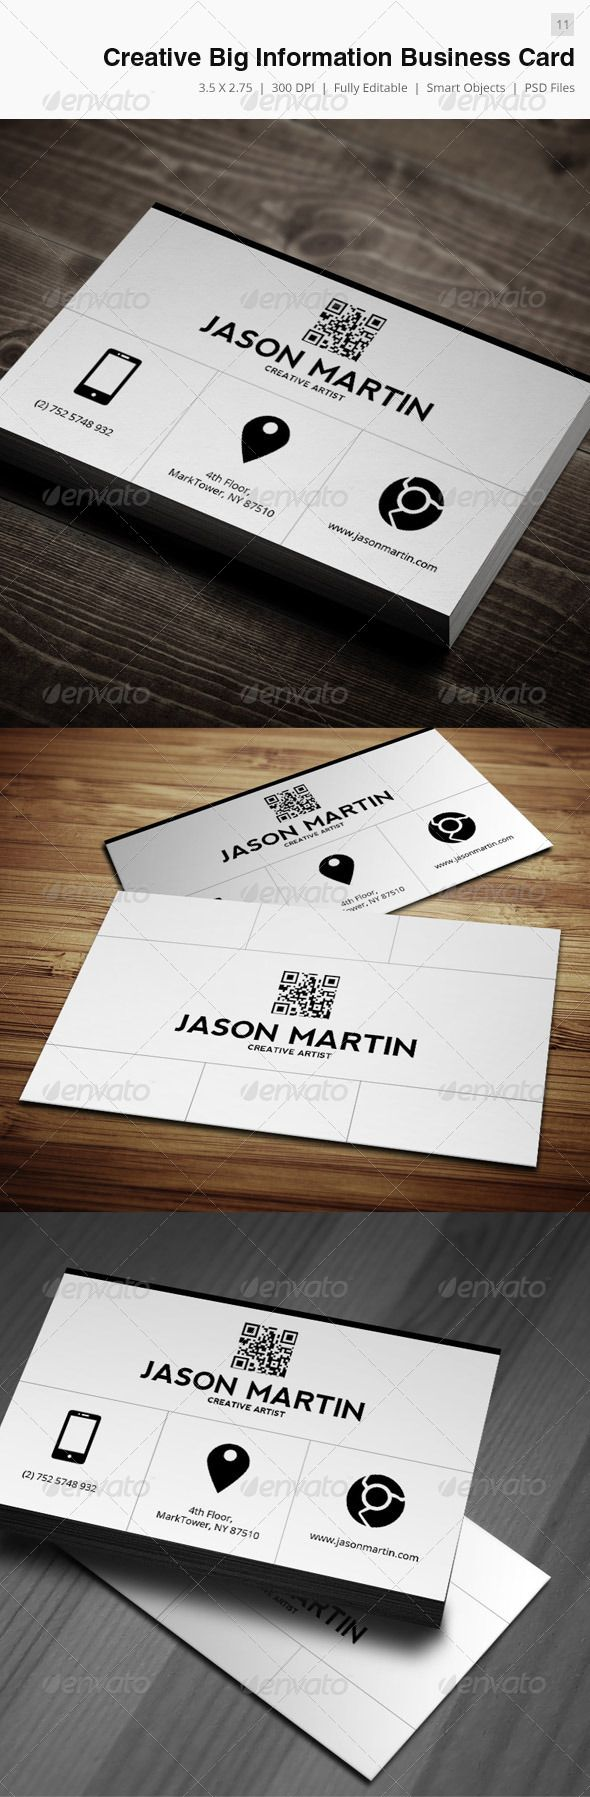 648 best cool business cards images on pinterest fonts arrows big information business card 11 magicingreecefo Choice Image